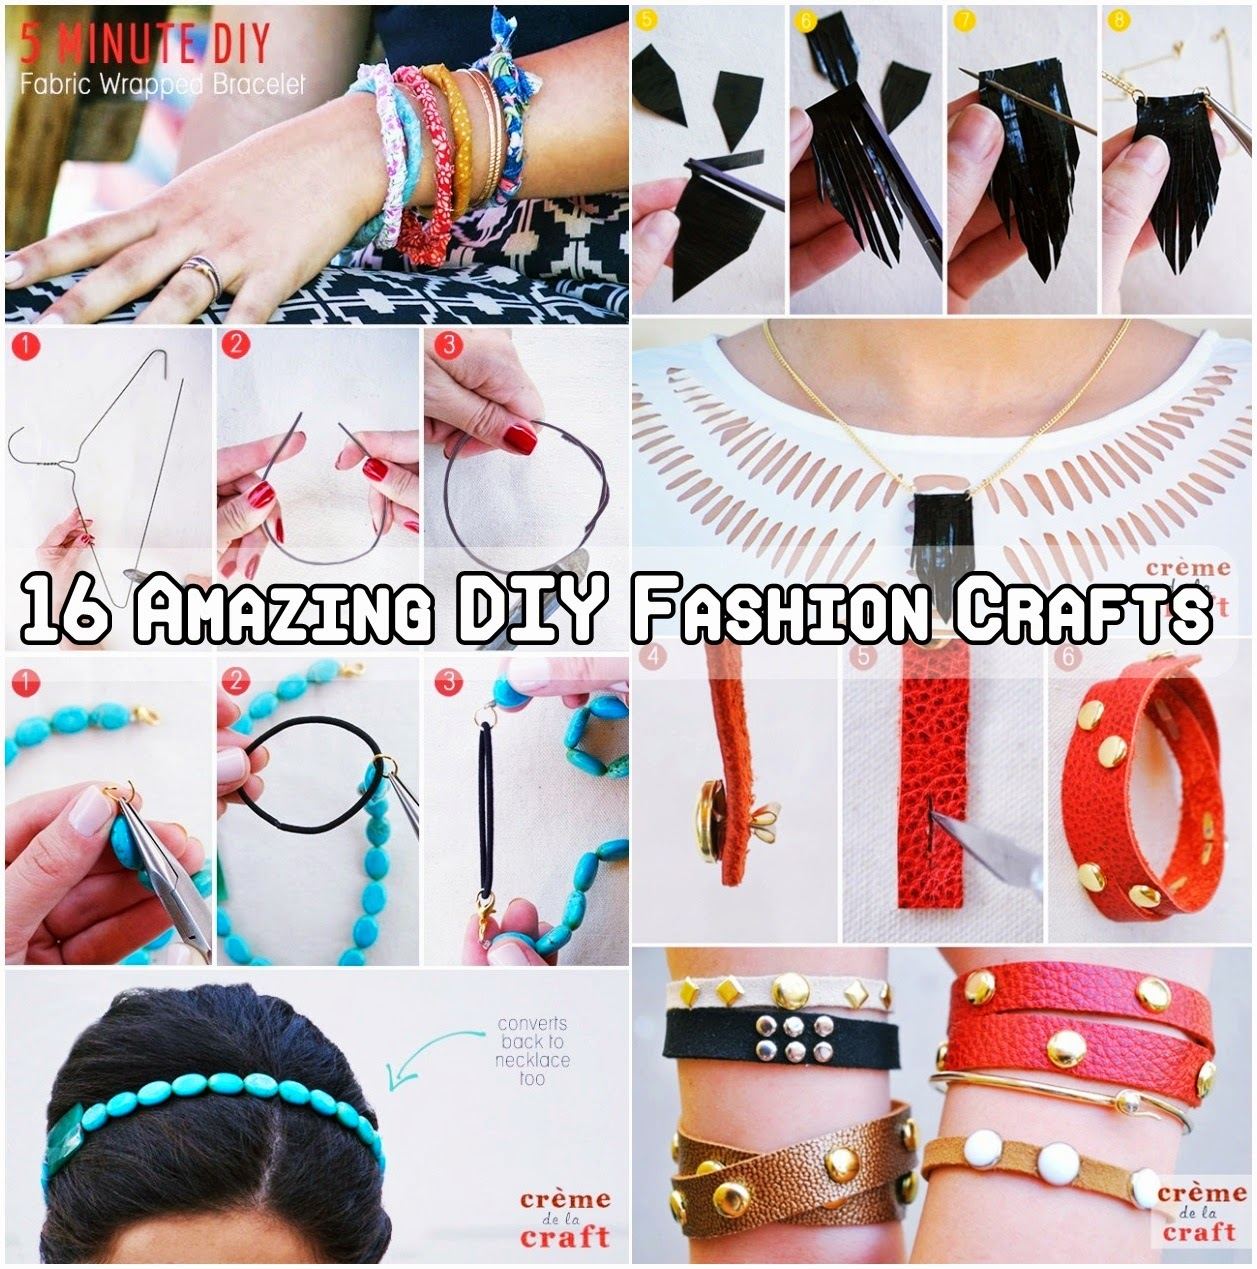 16 Amazing DIY Fashion Crafts